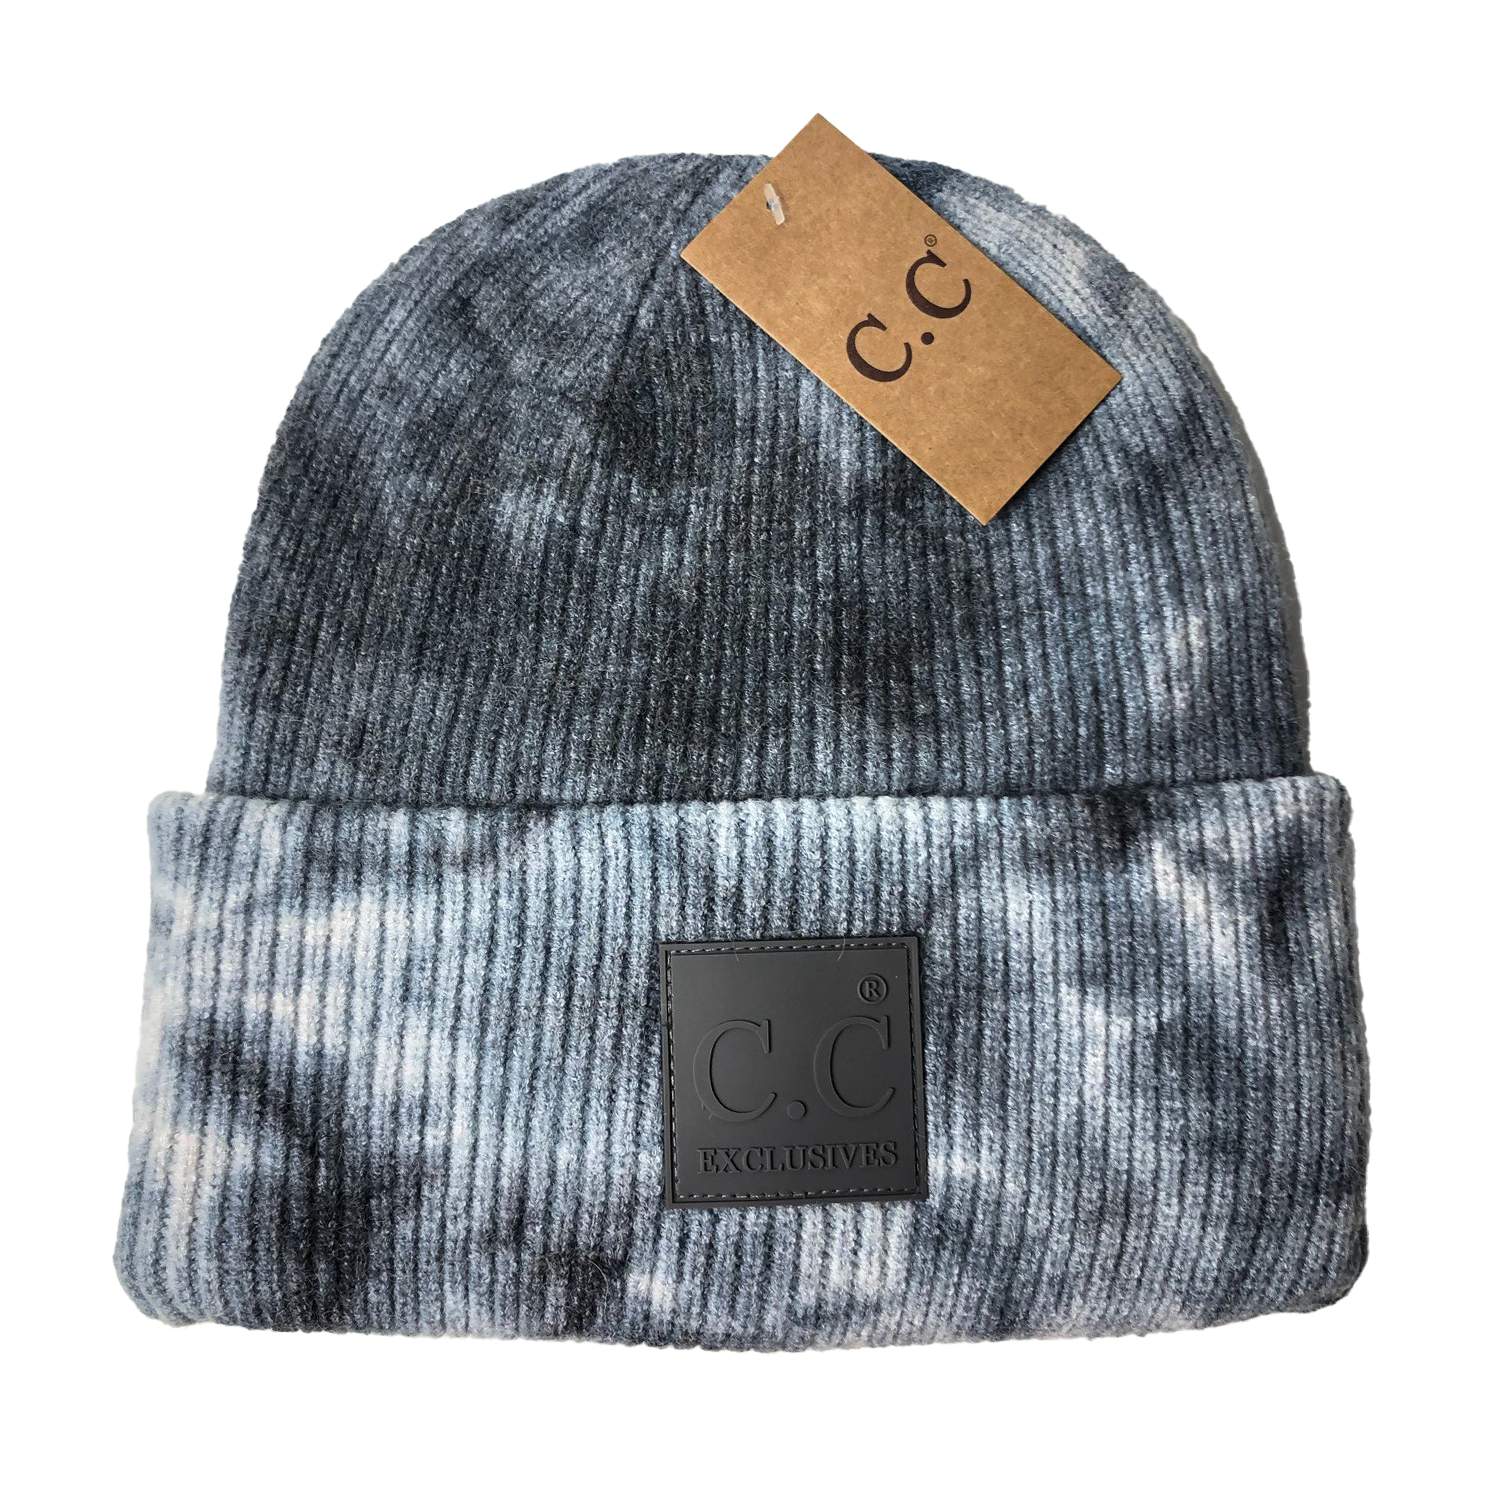 HAT-7380 Tie Dye Beanie with C.C Rubber Patch - Dark Grey/Light Grey